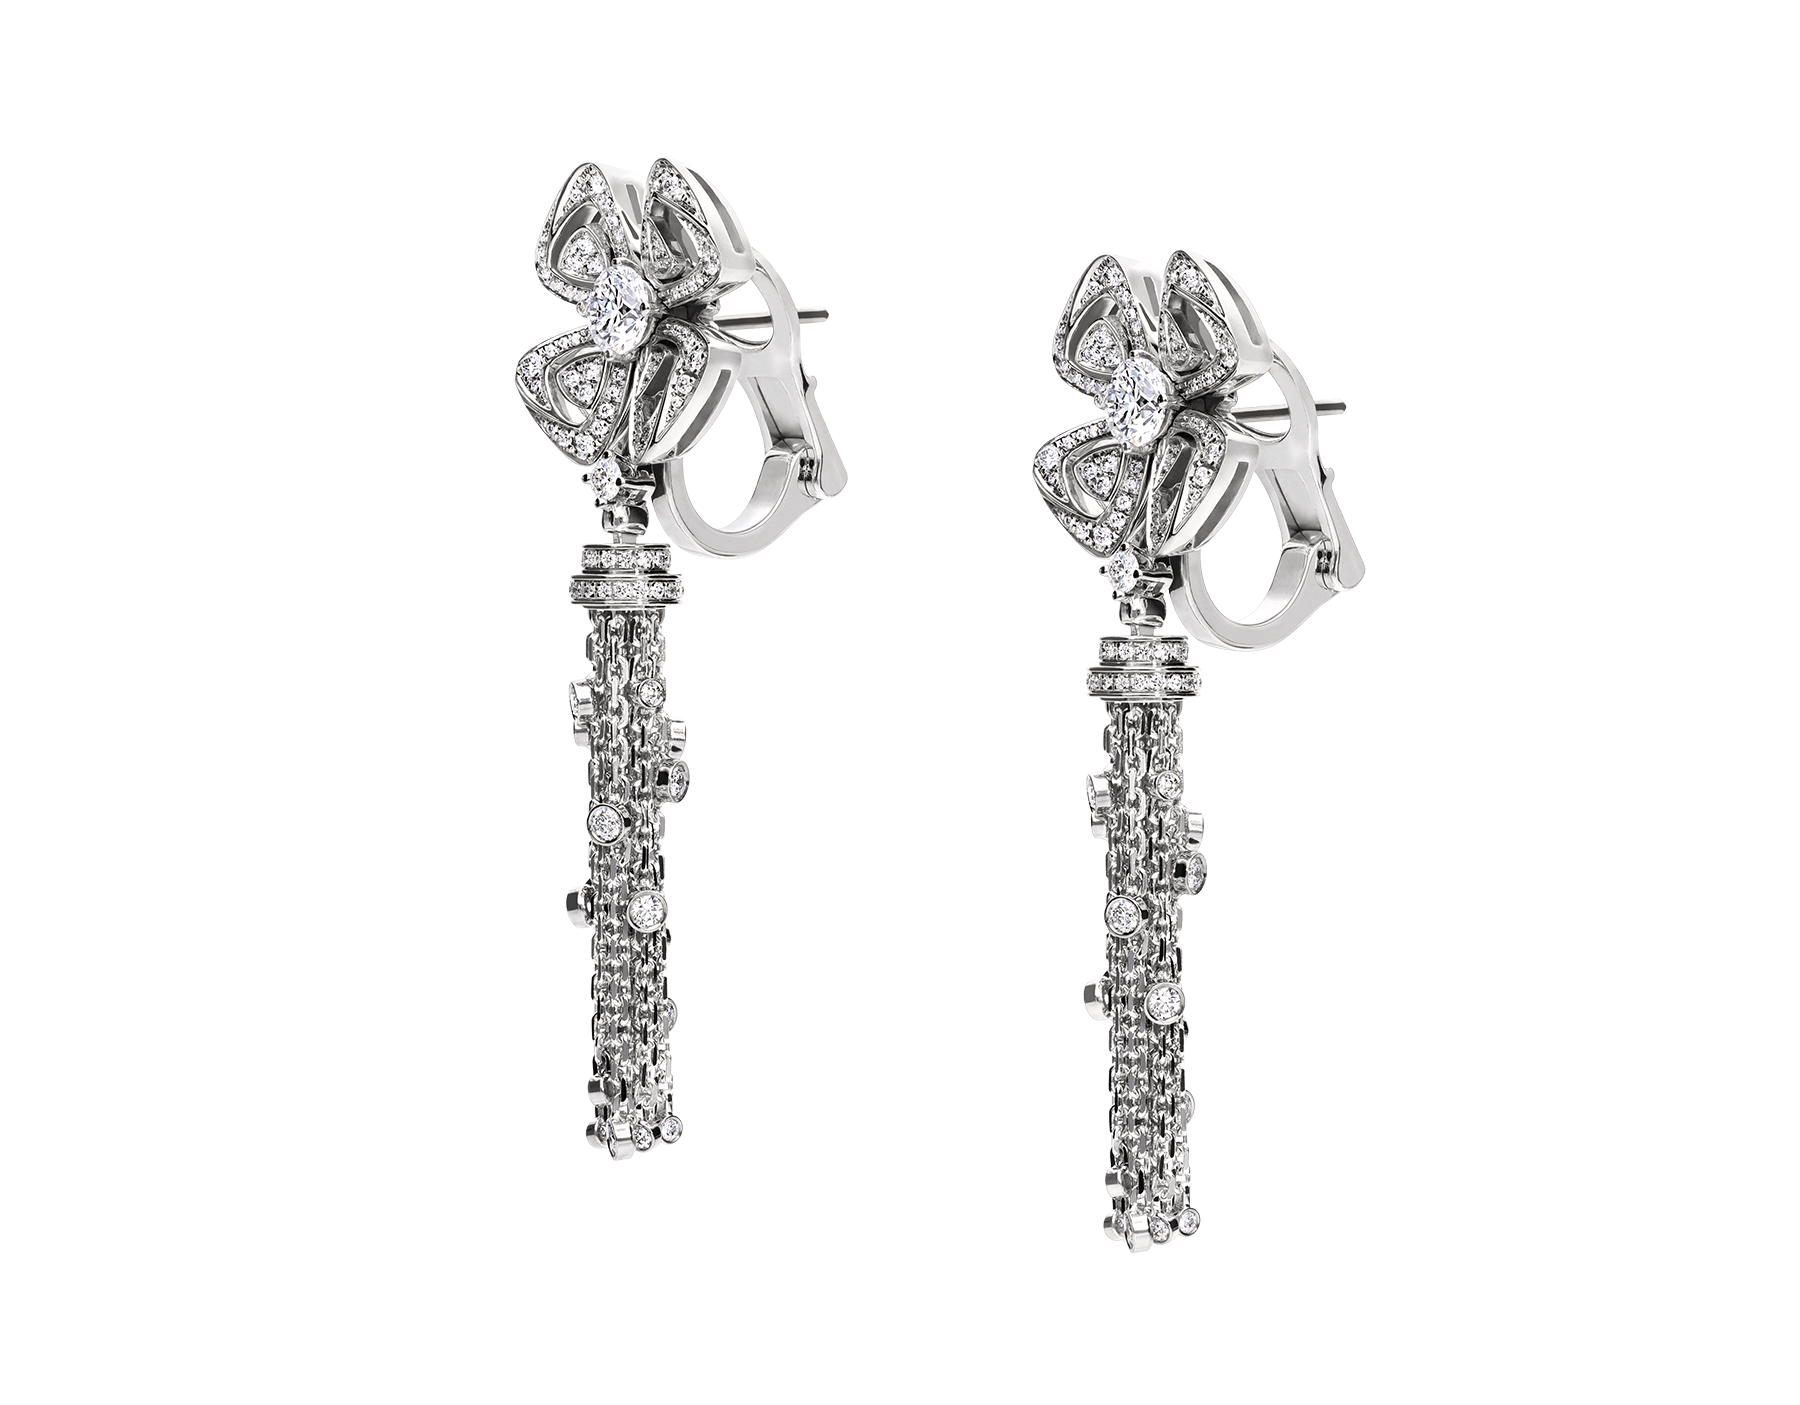 Fiorever 18 kt white gold earrings, set with two central diamonds and pavé diamonds. 354528 image 2